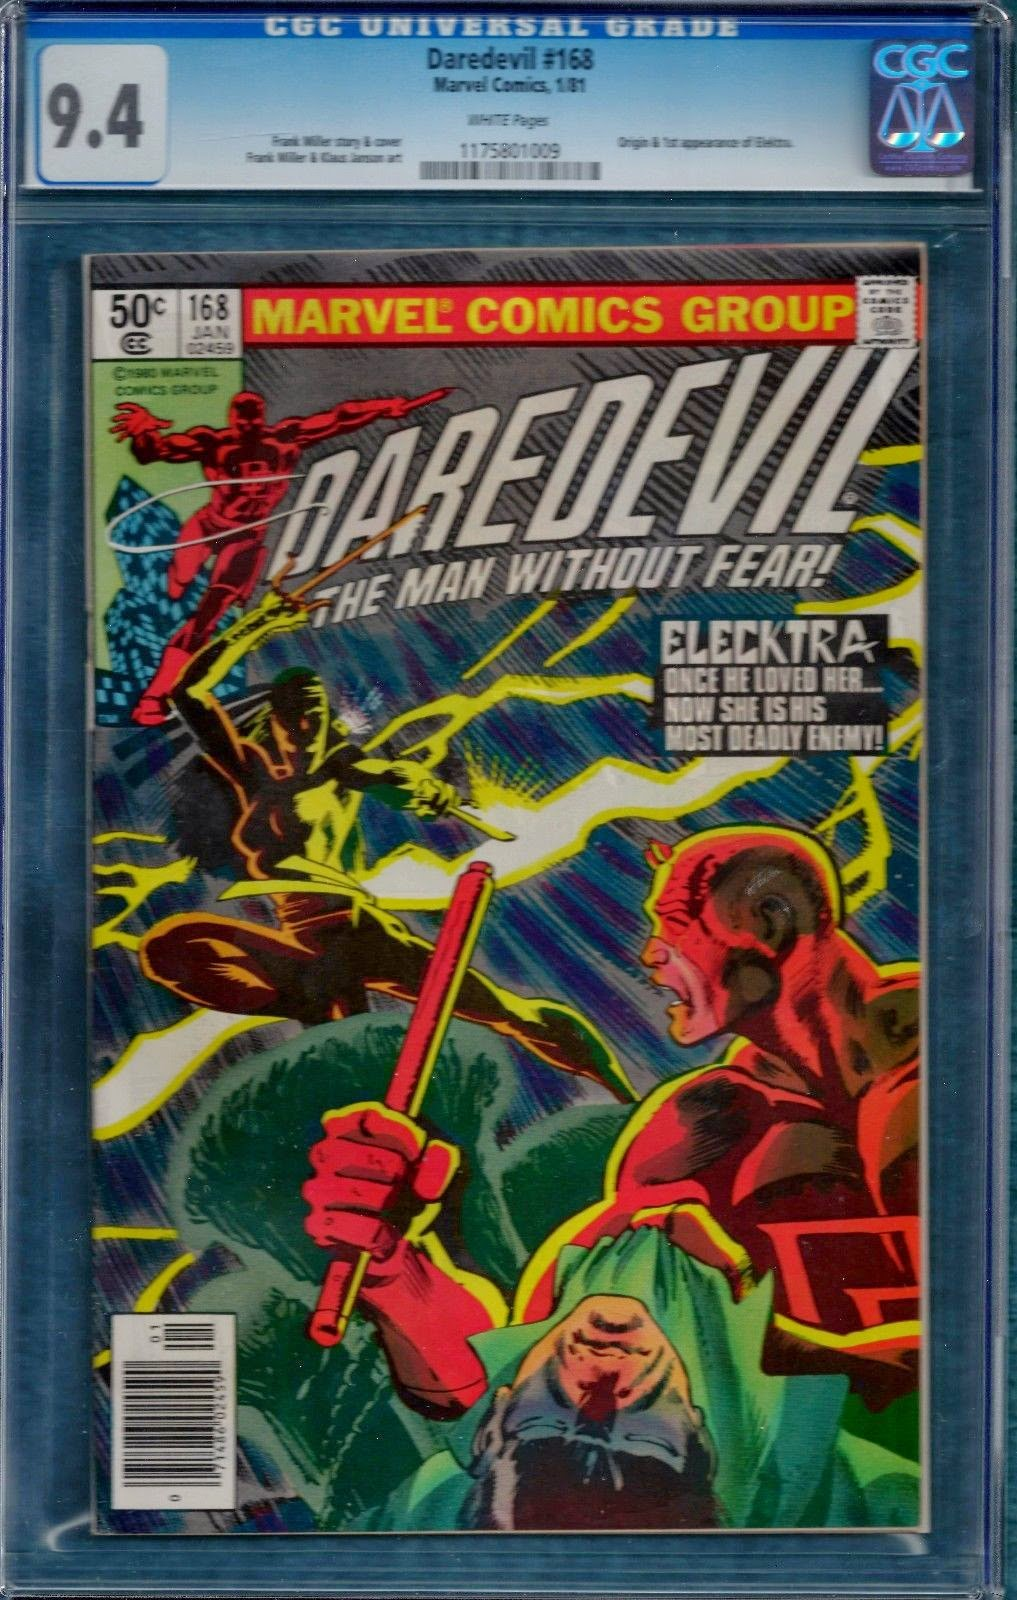 http://www.totalcomicmayhem.com/2014/10/daredevil-168-cgc-94-first-elektra.html